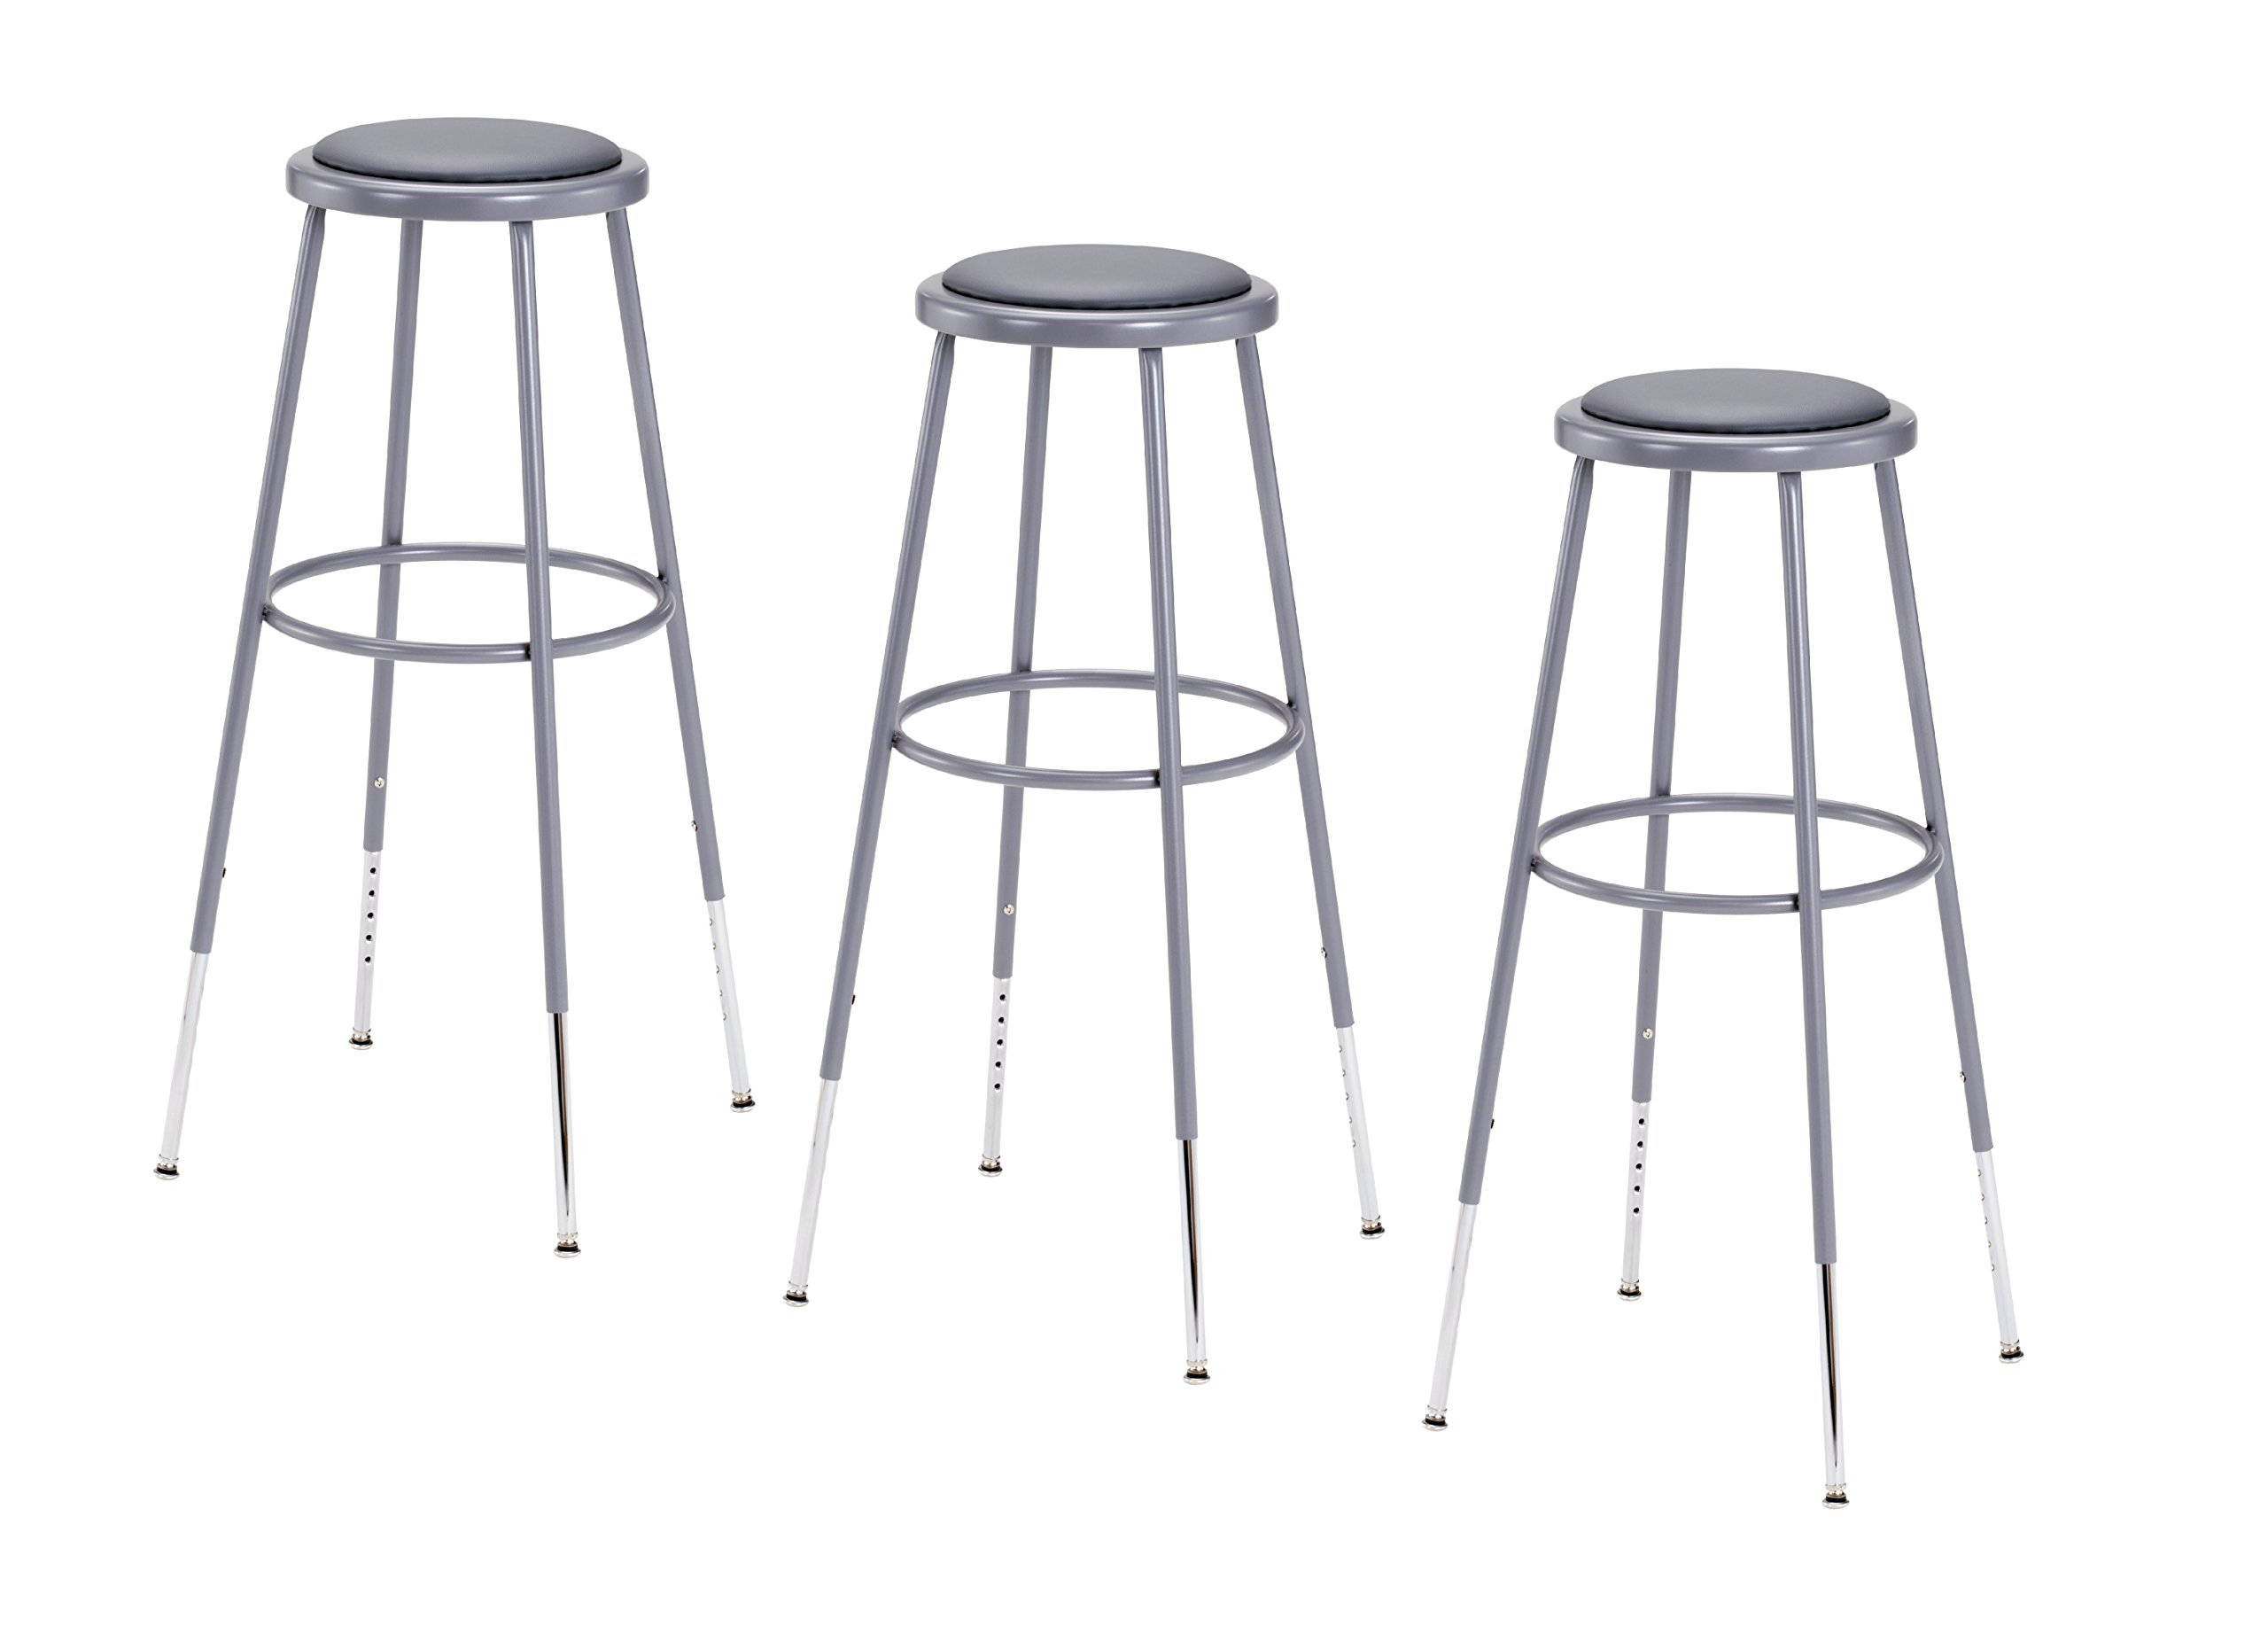 National Public Seating 6430H-CN Steel Stool with Vinyl Upholstered Seat Adjustable, 31''-39'', Grey (Pack of 3) by National Public Seating